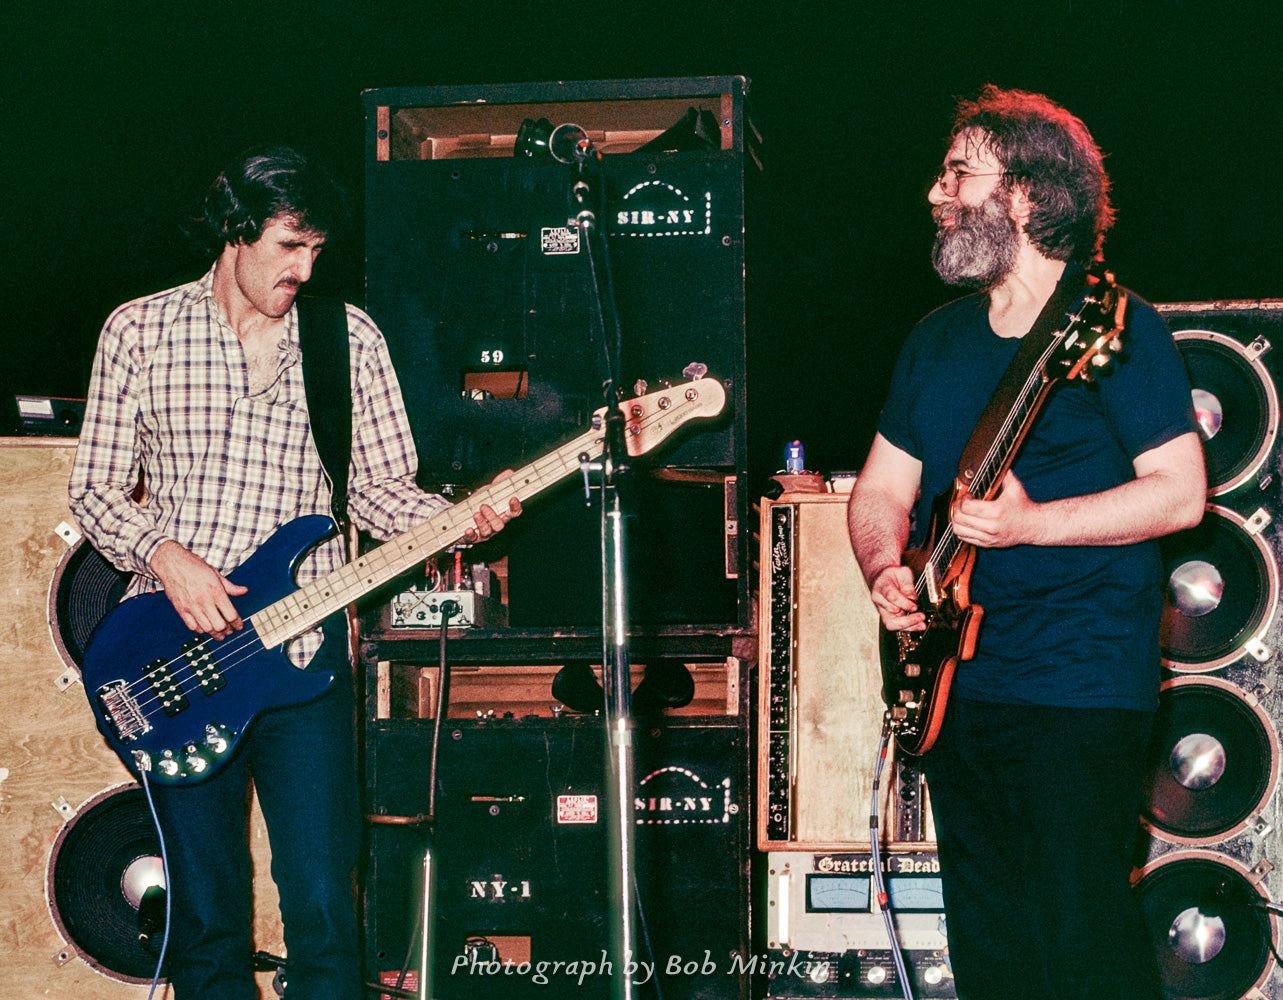 Jerry Garcia & John Kahn - Music Mountain, S. Fallsburg, NY - 6.16.82 - Bob Minkin Photography